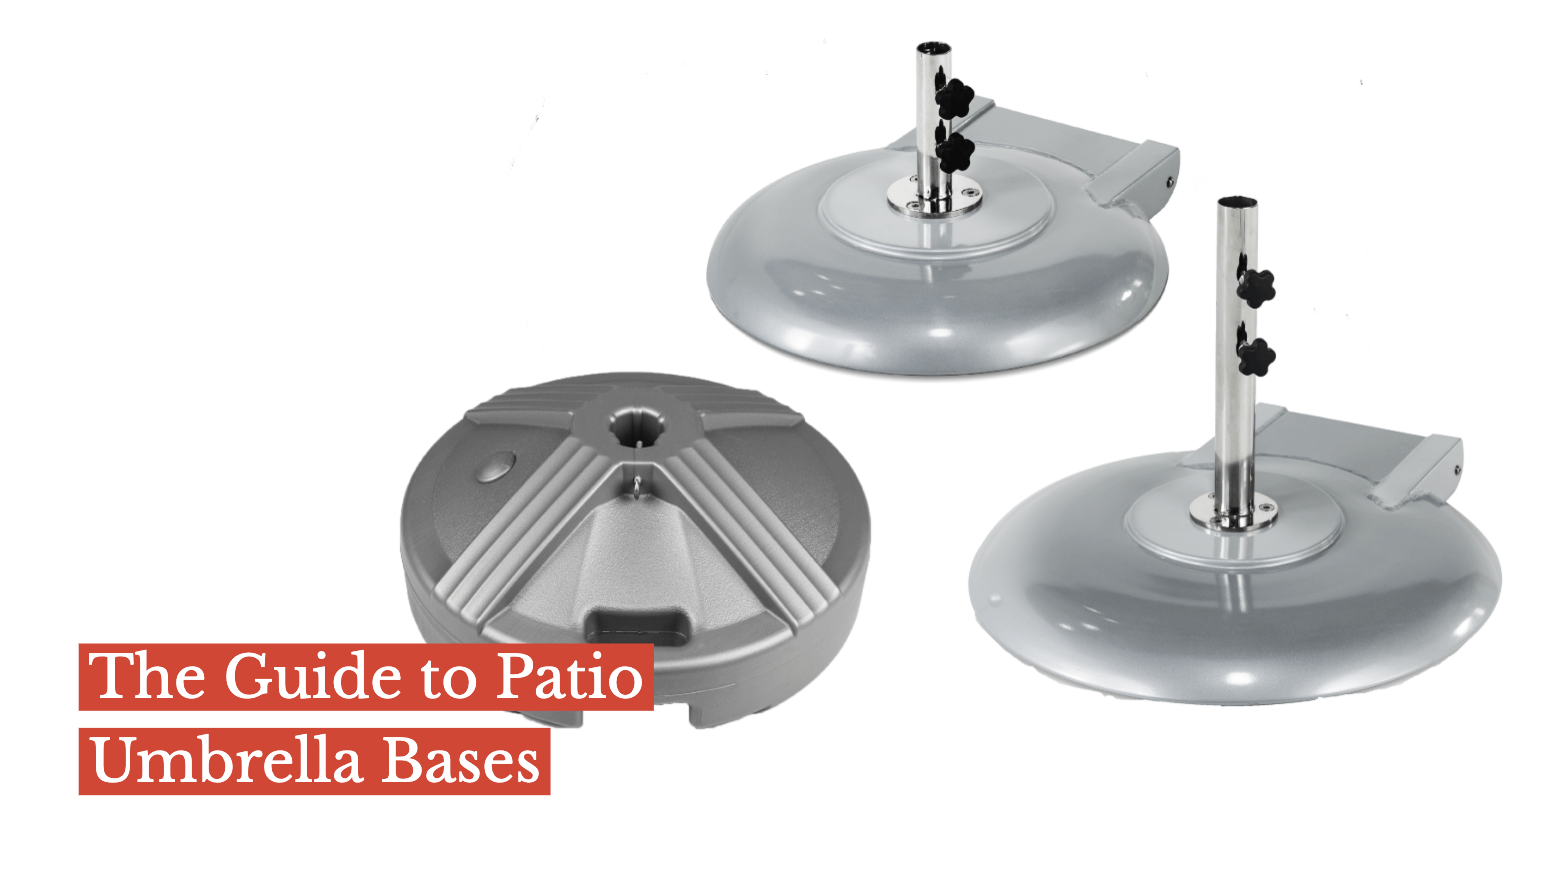 The Guide to Patio Umbrella Bases